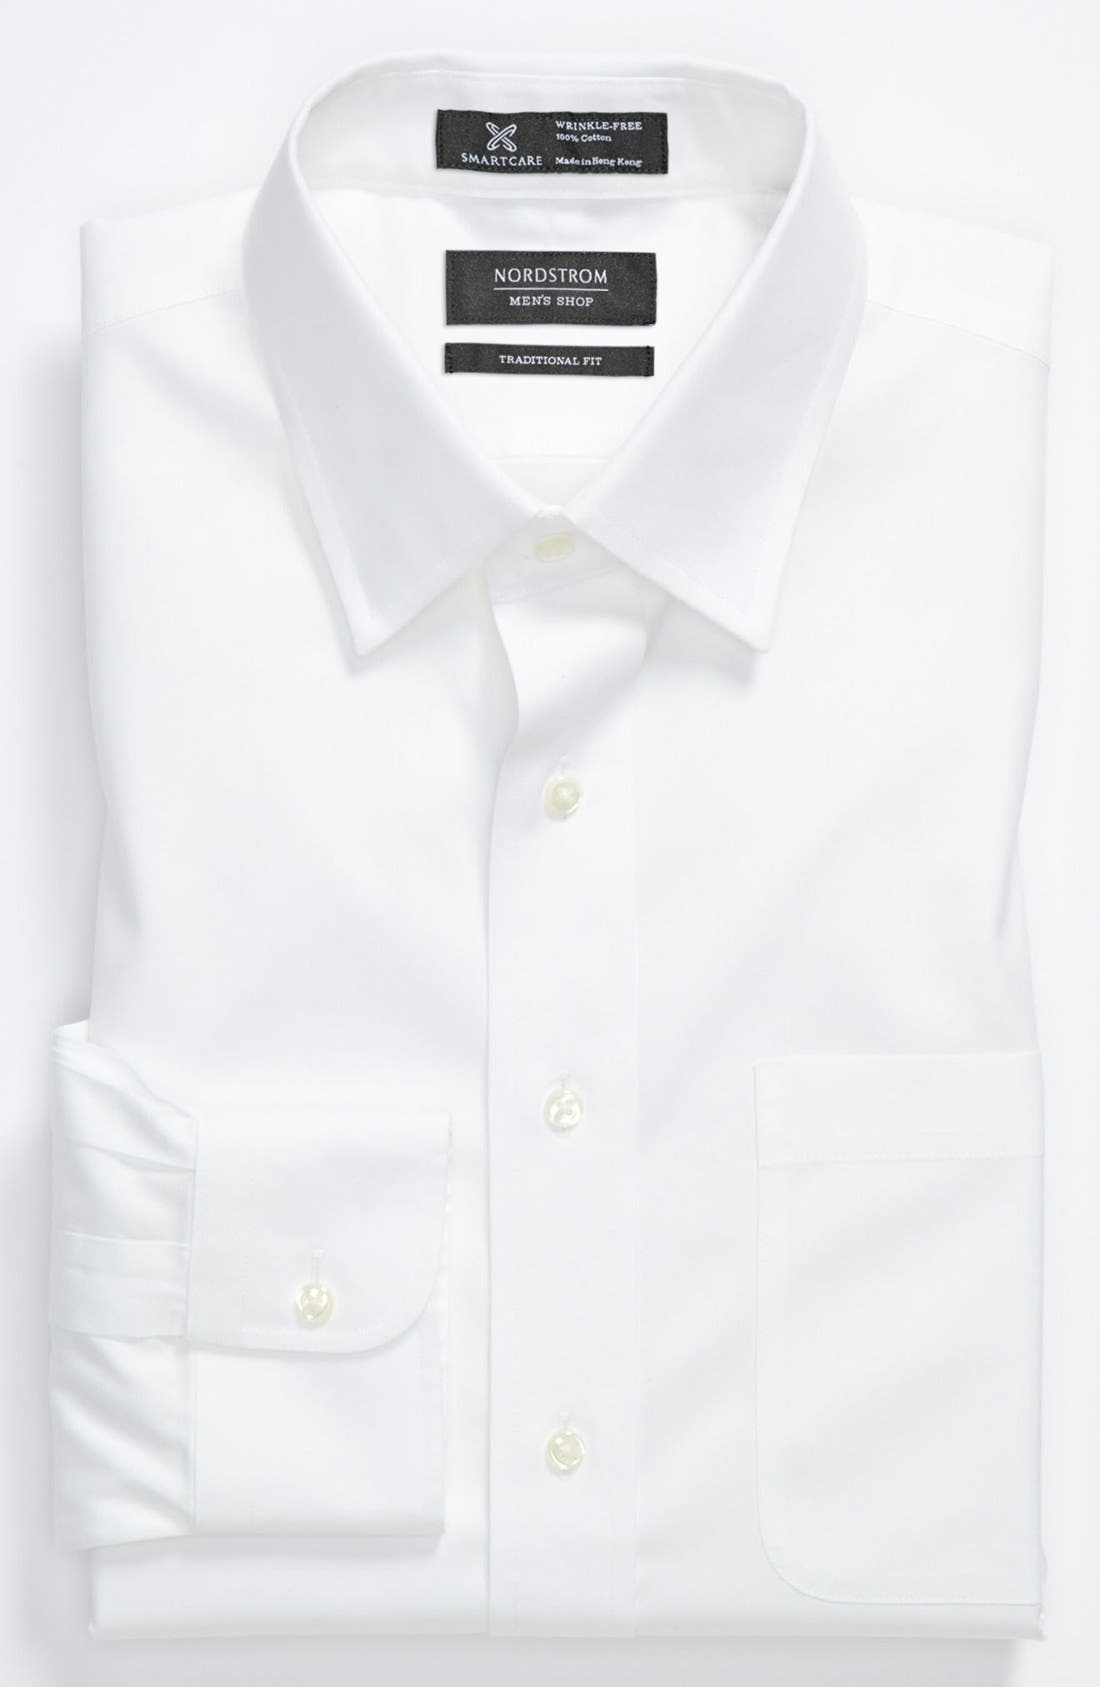 Nordstrom Men's Shop Smartcare™ Traditional Fit Dress Shirt